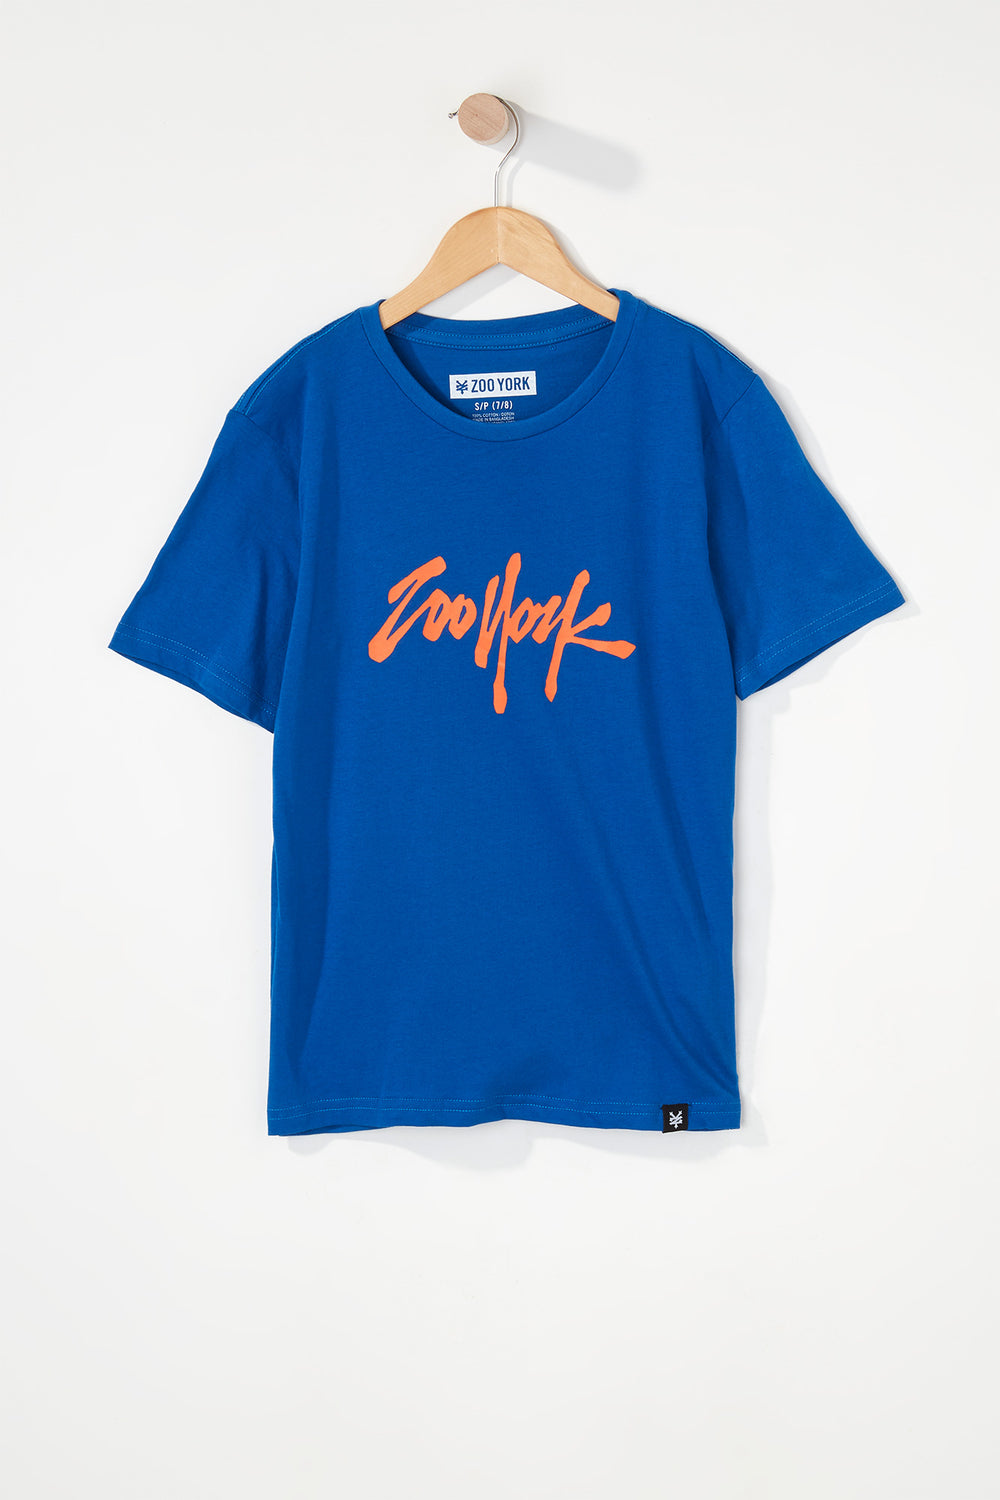 Zoo York Boys NYC 5 Boroughs T-Shirt Blue